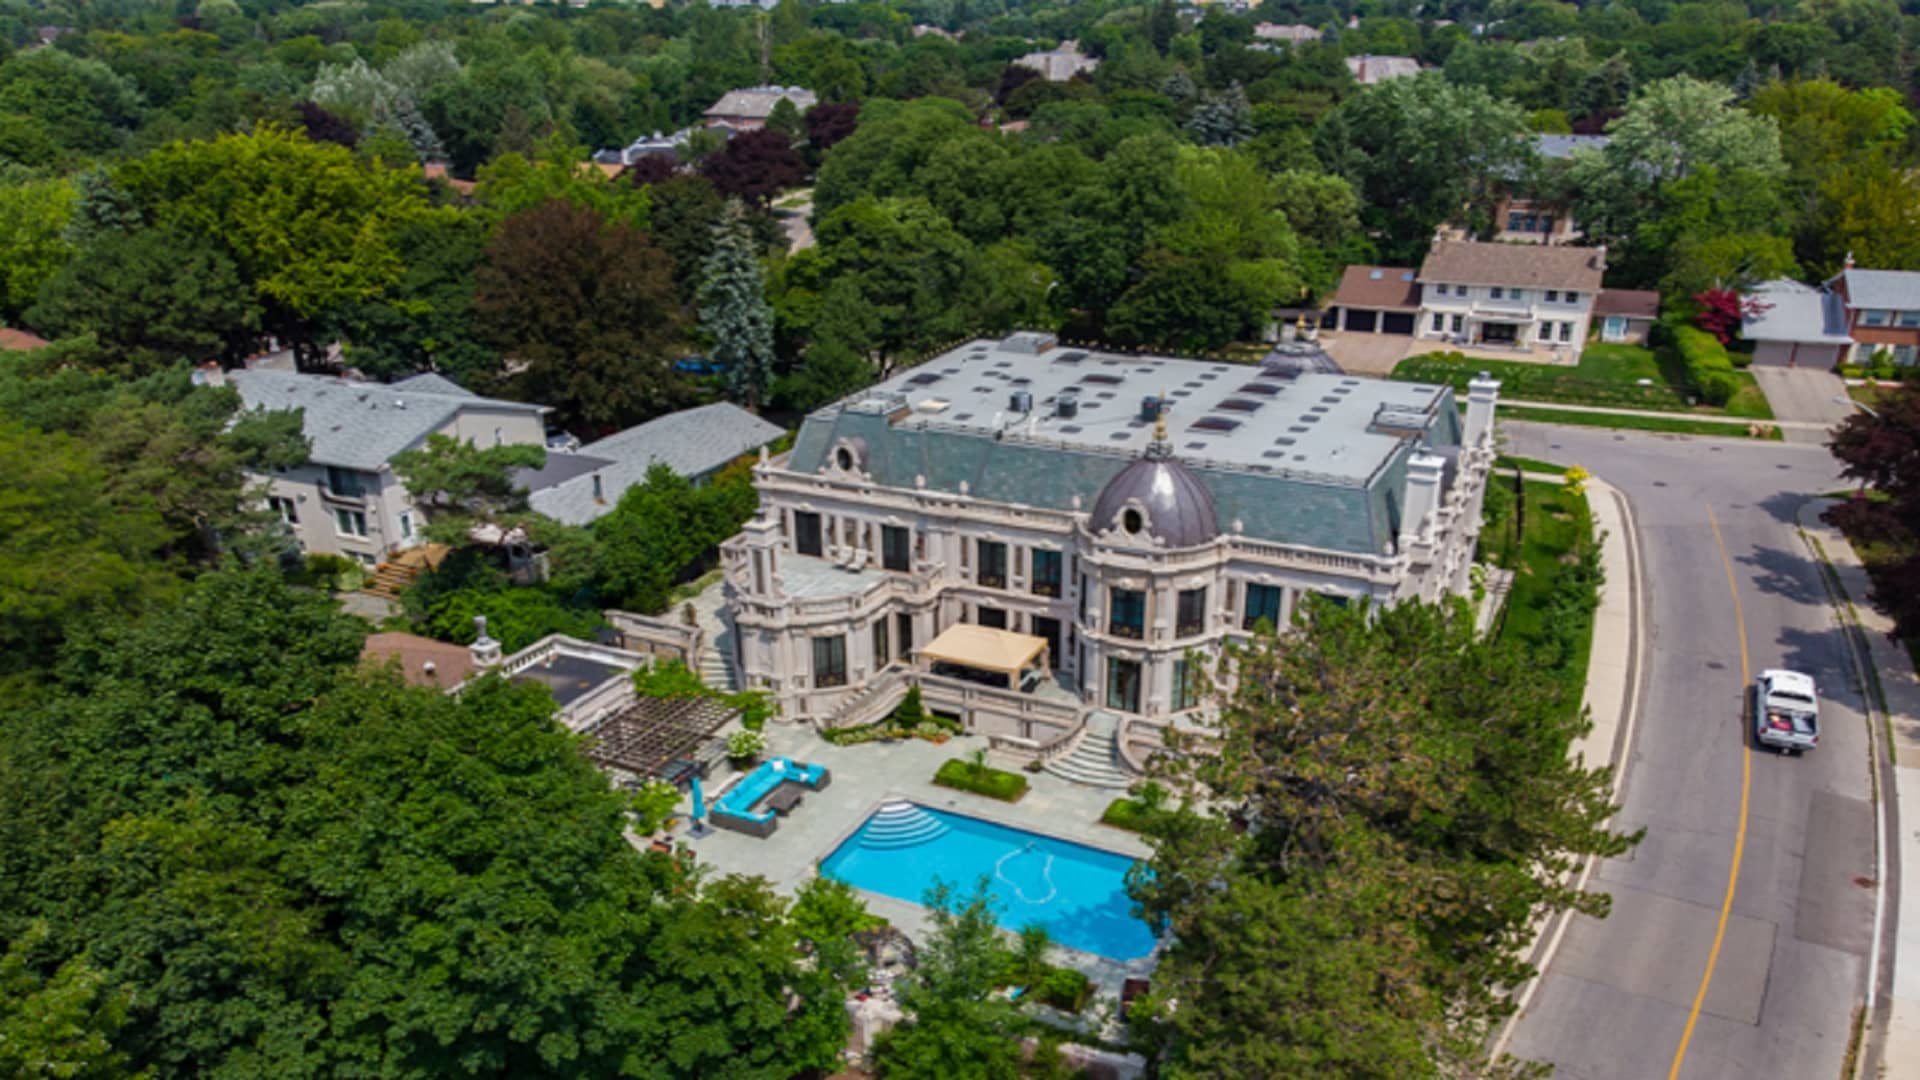 Aerial view of 30 Fifeshire Road in Toronto, Canada